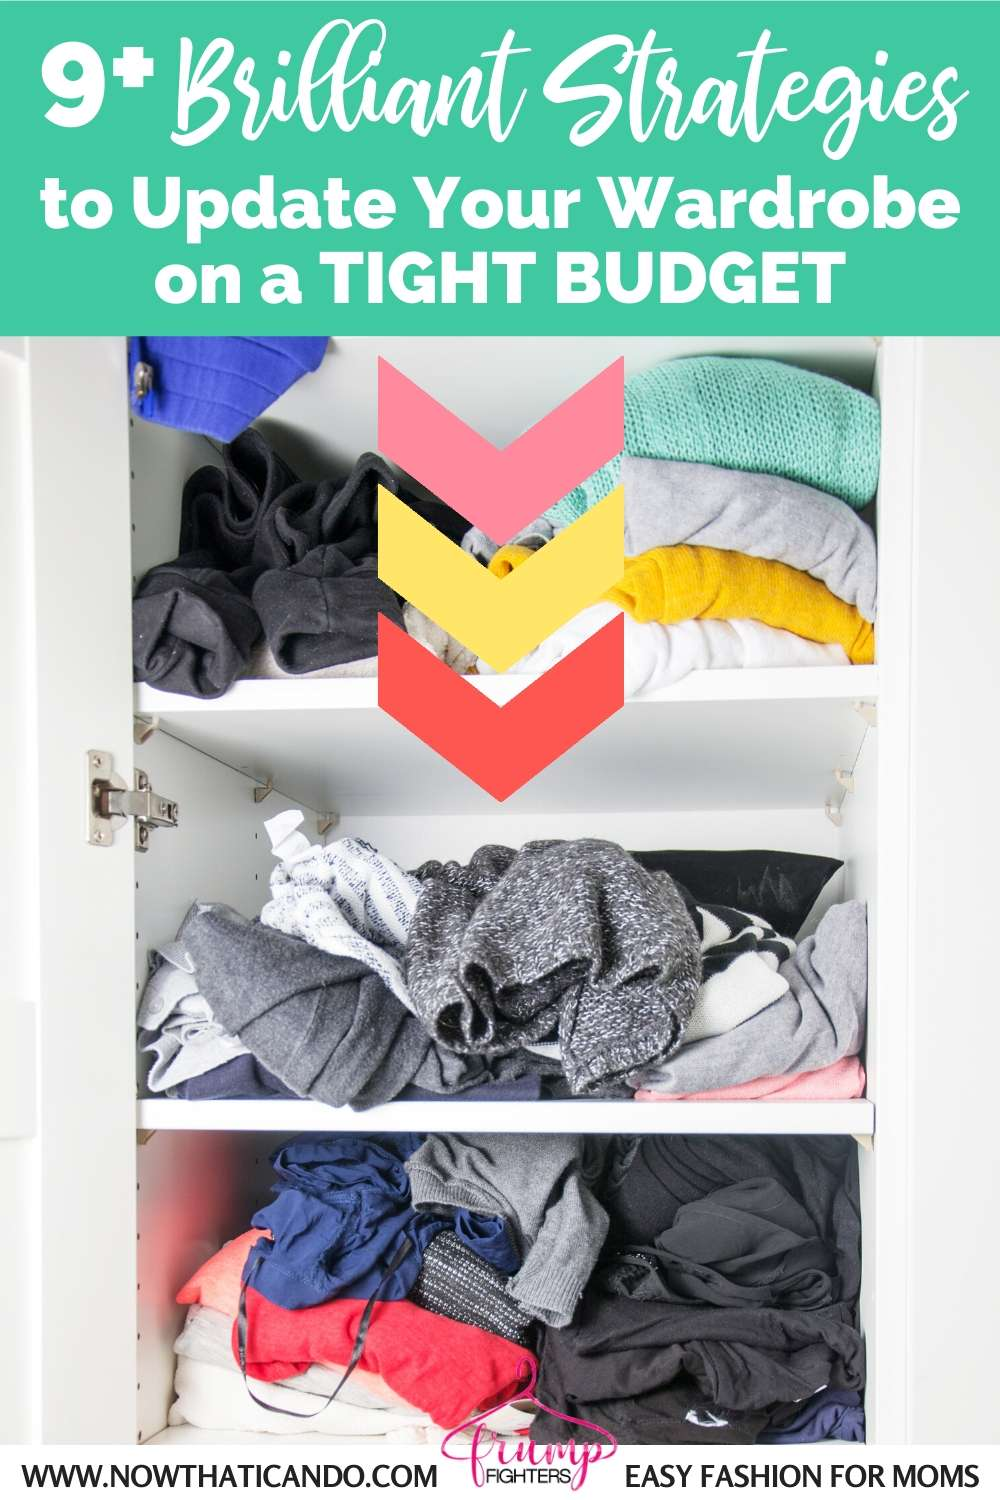 How to update or change your wardrobe on a budget - budget wardrobe makeover for cheap - tips and strategies and free shopping list to dress well on a budget